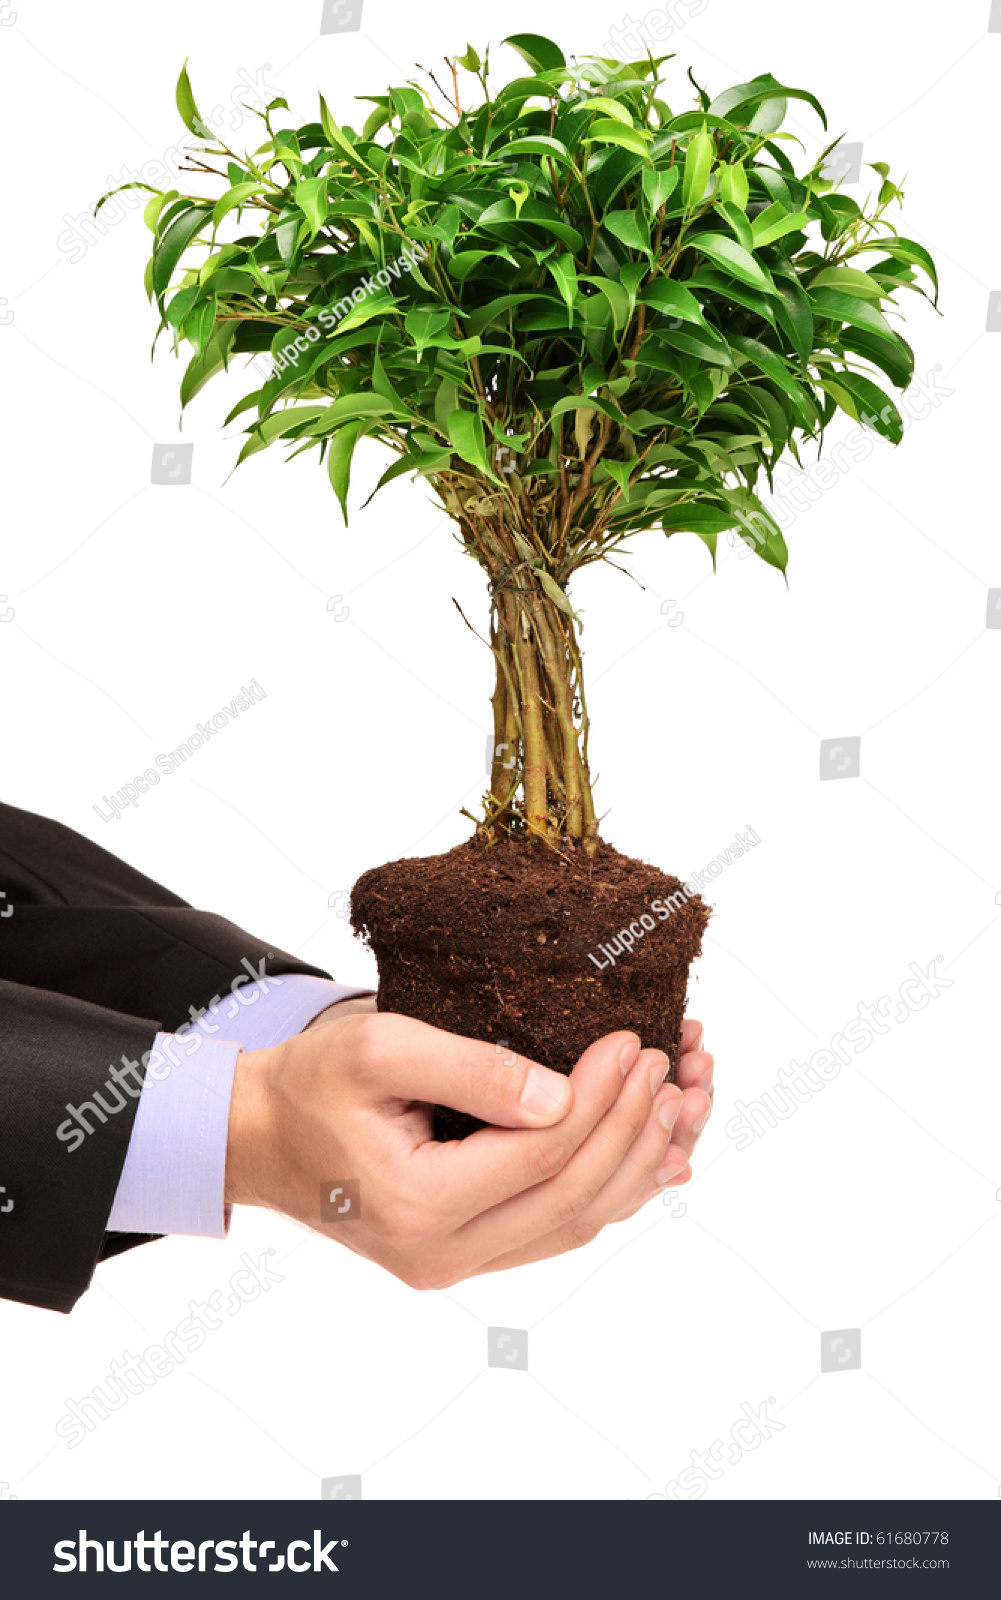 a hand holding a plant ficus benjamin ficus benjamina natasja isolated on white background. Black Bedroom Furniture Sets. Home Design Ideas